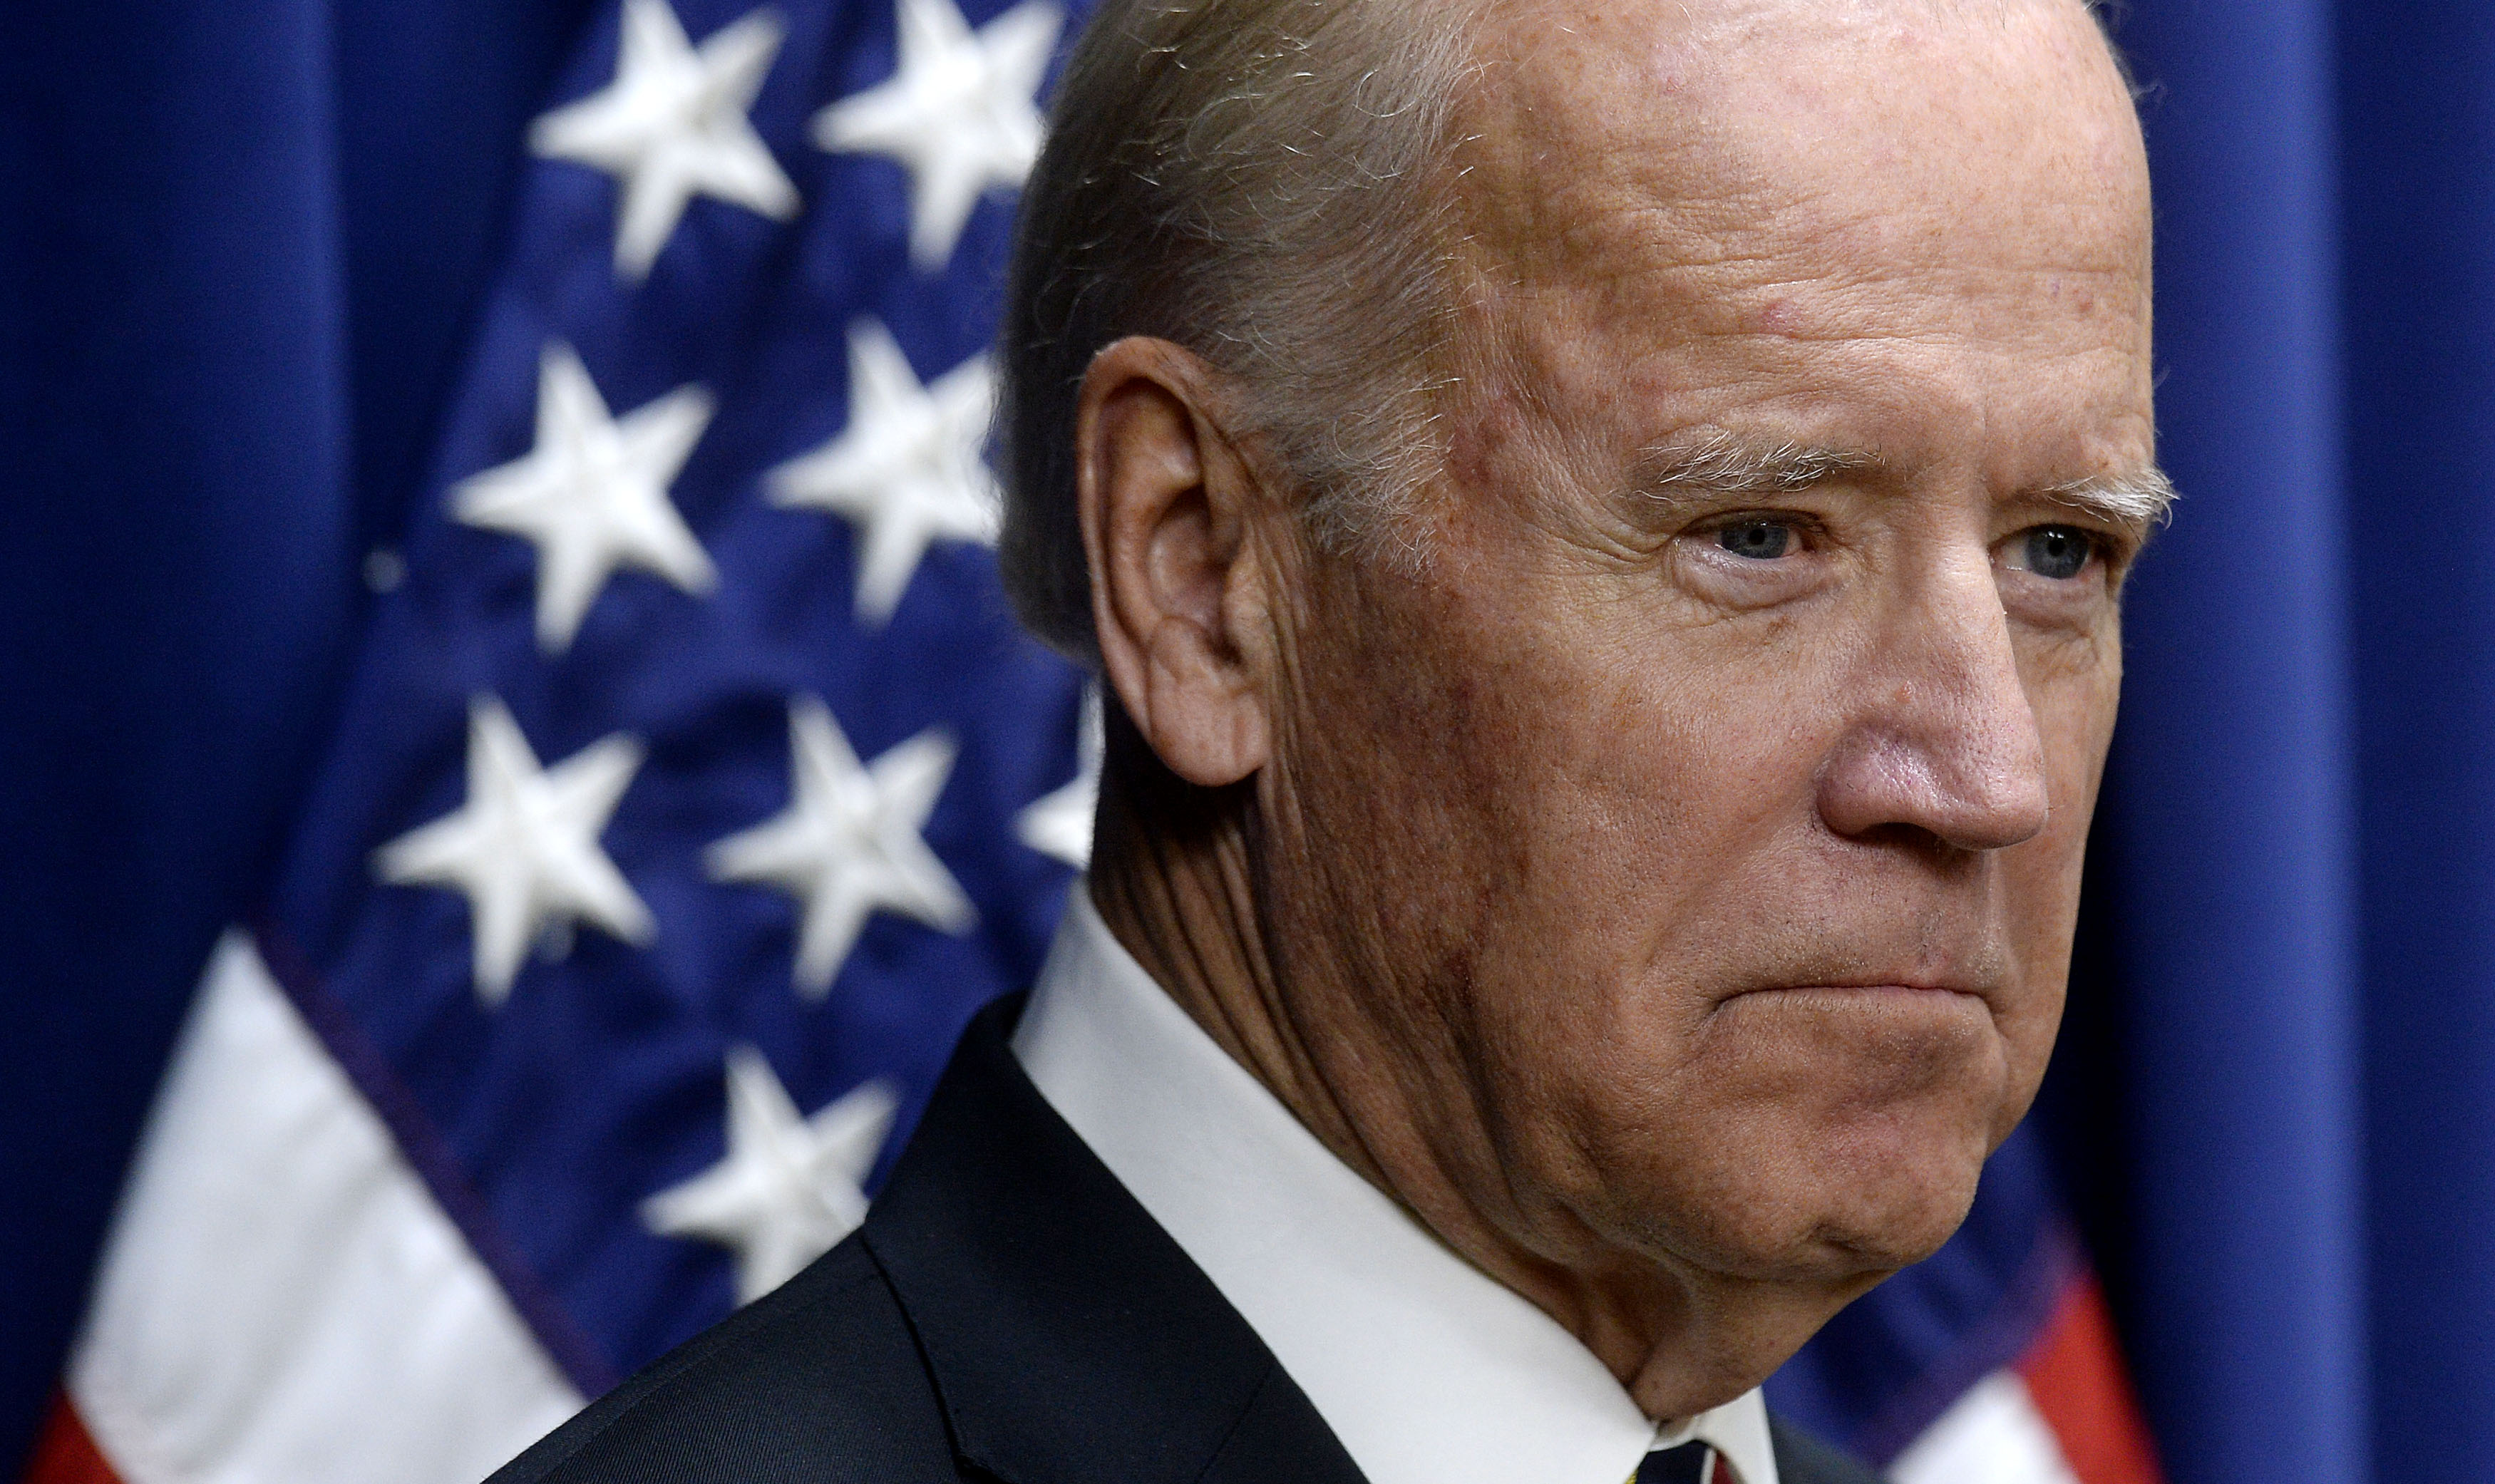 Joe Biden looks on during a climate summit event at the Eisenhower Executive Office Building in Washington, on Oct. 19, 2015.